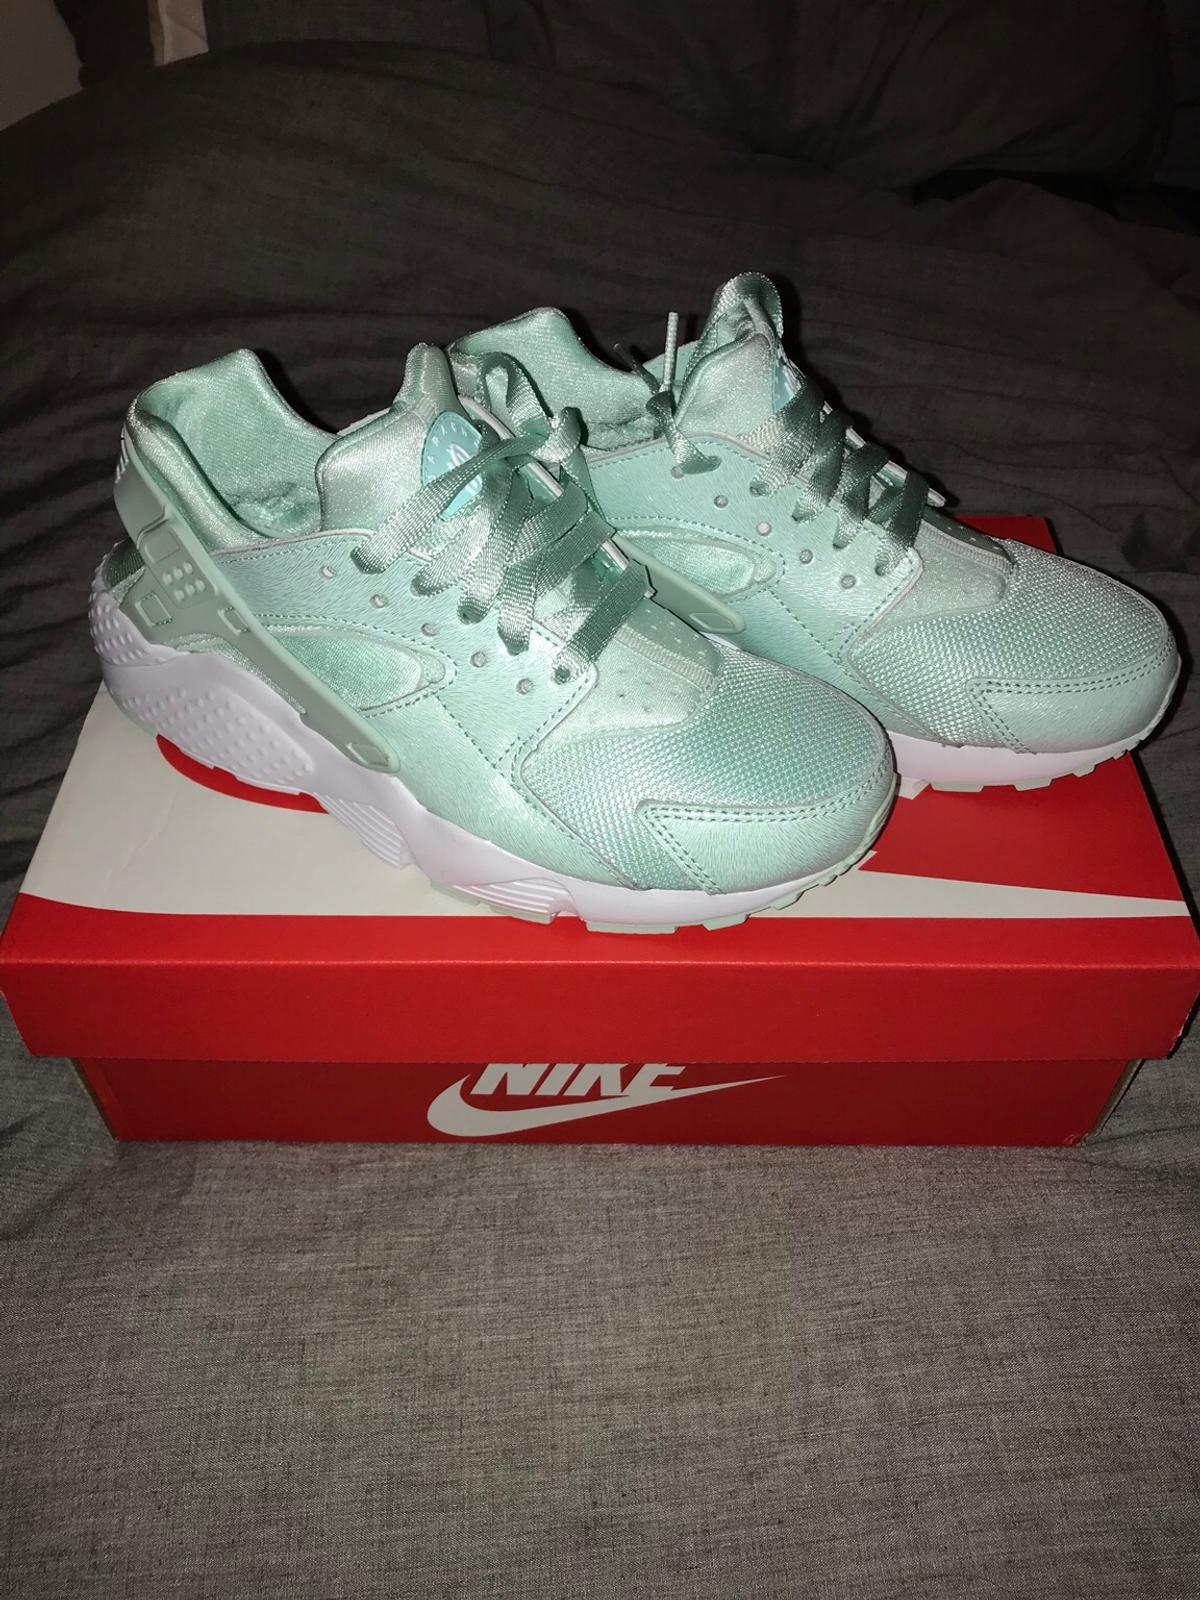 sports shoes 0c4aa 2d258 Size 5 Nike green hurraches. Brand new. in TW1 London for £30.00 for ...